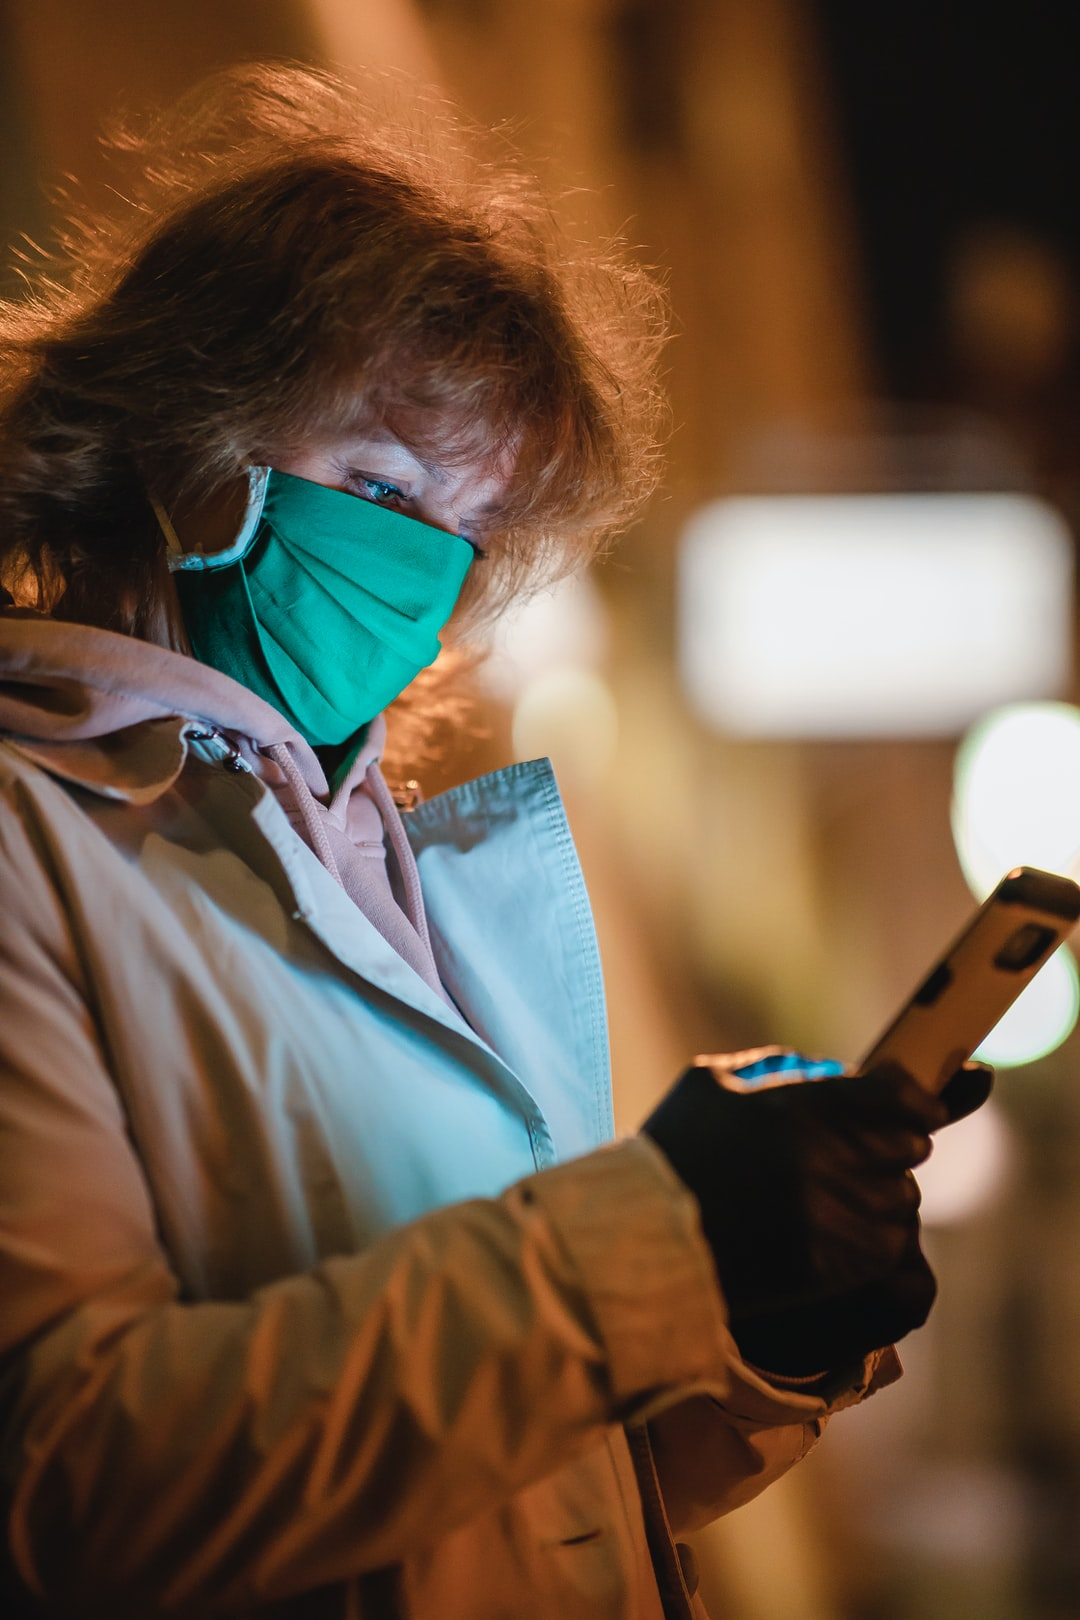 Woman in green face mask using smartphone at night during the COVID-19 pandemy. Warsaw, Old Town, Poland